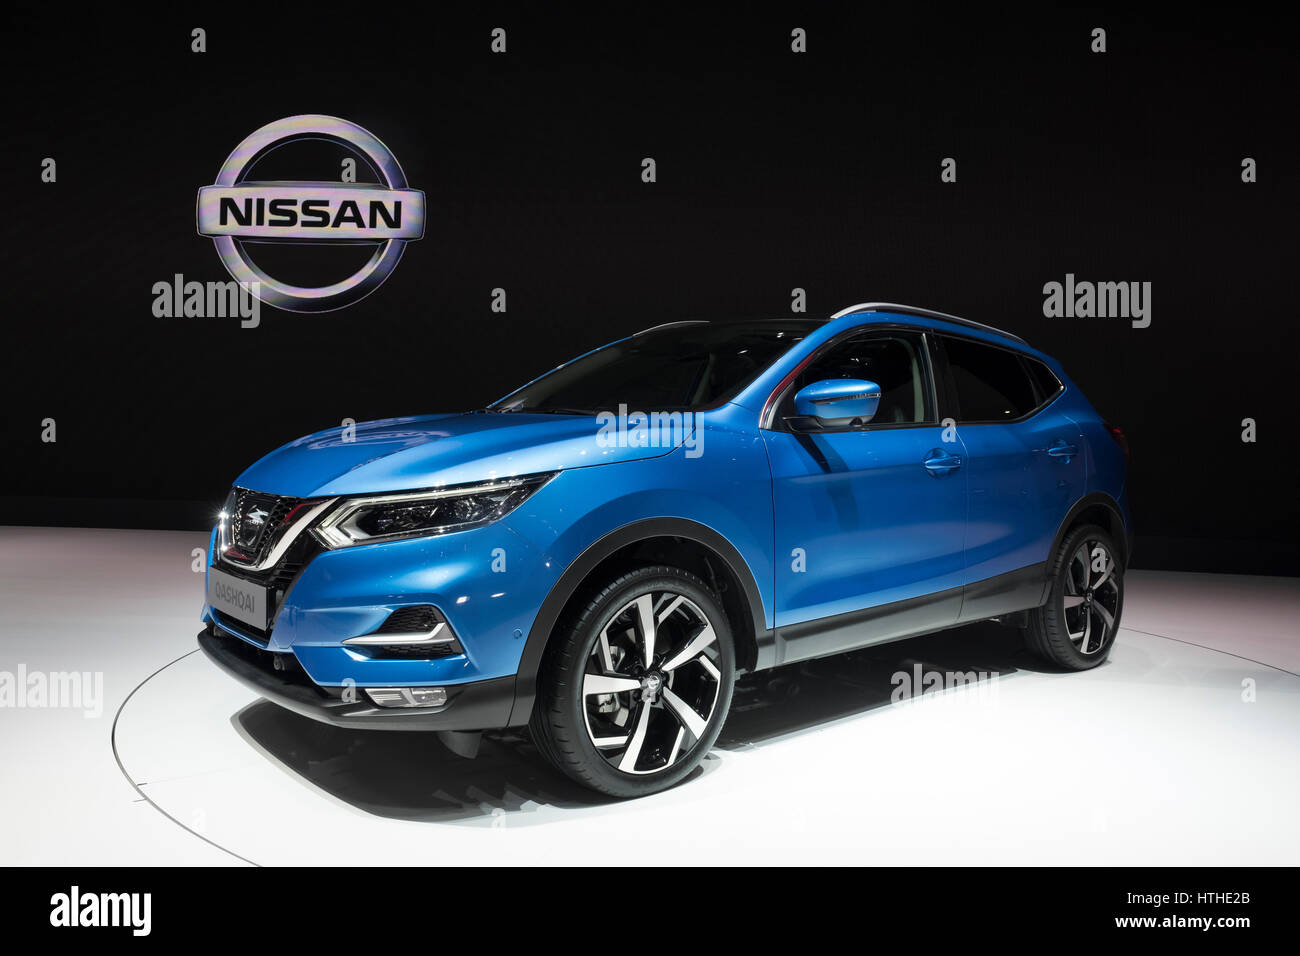 new 2018 facelift design of nissan qashqai at 87th geneva. Black Bedroom Furniture Sets. Home Design Ideas